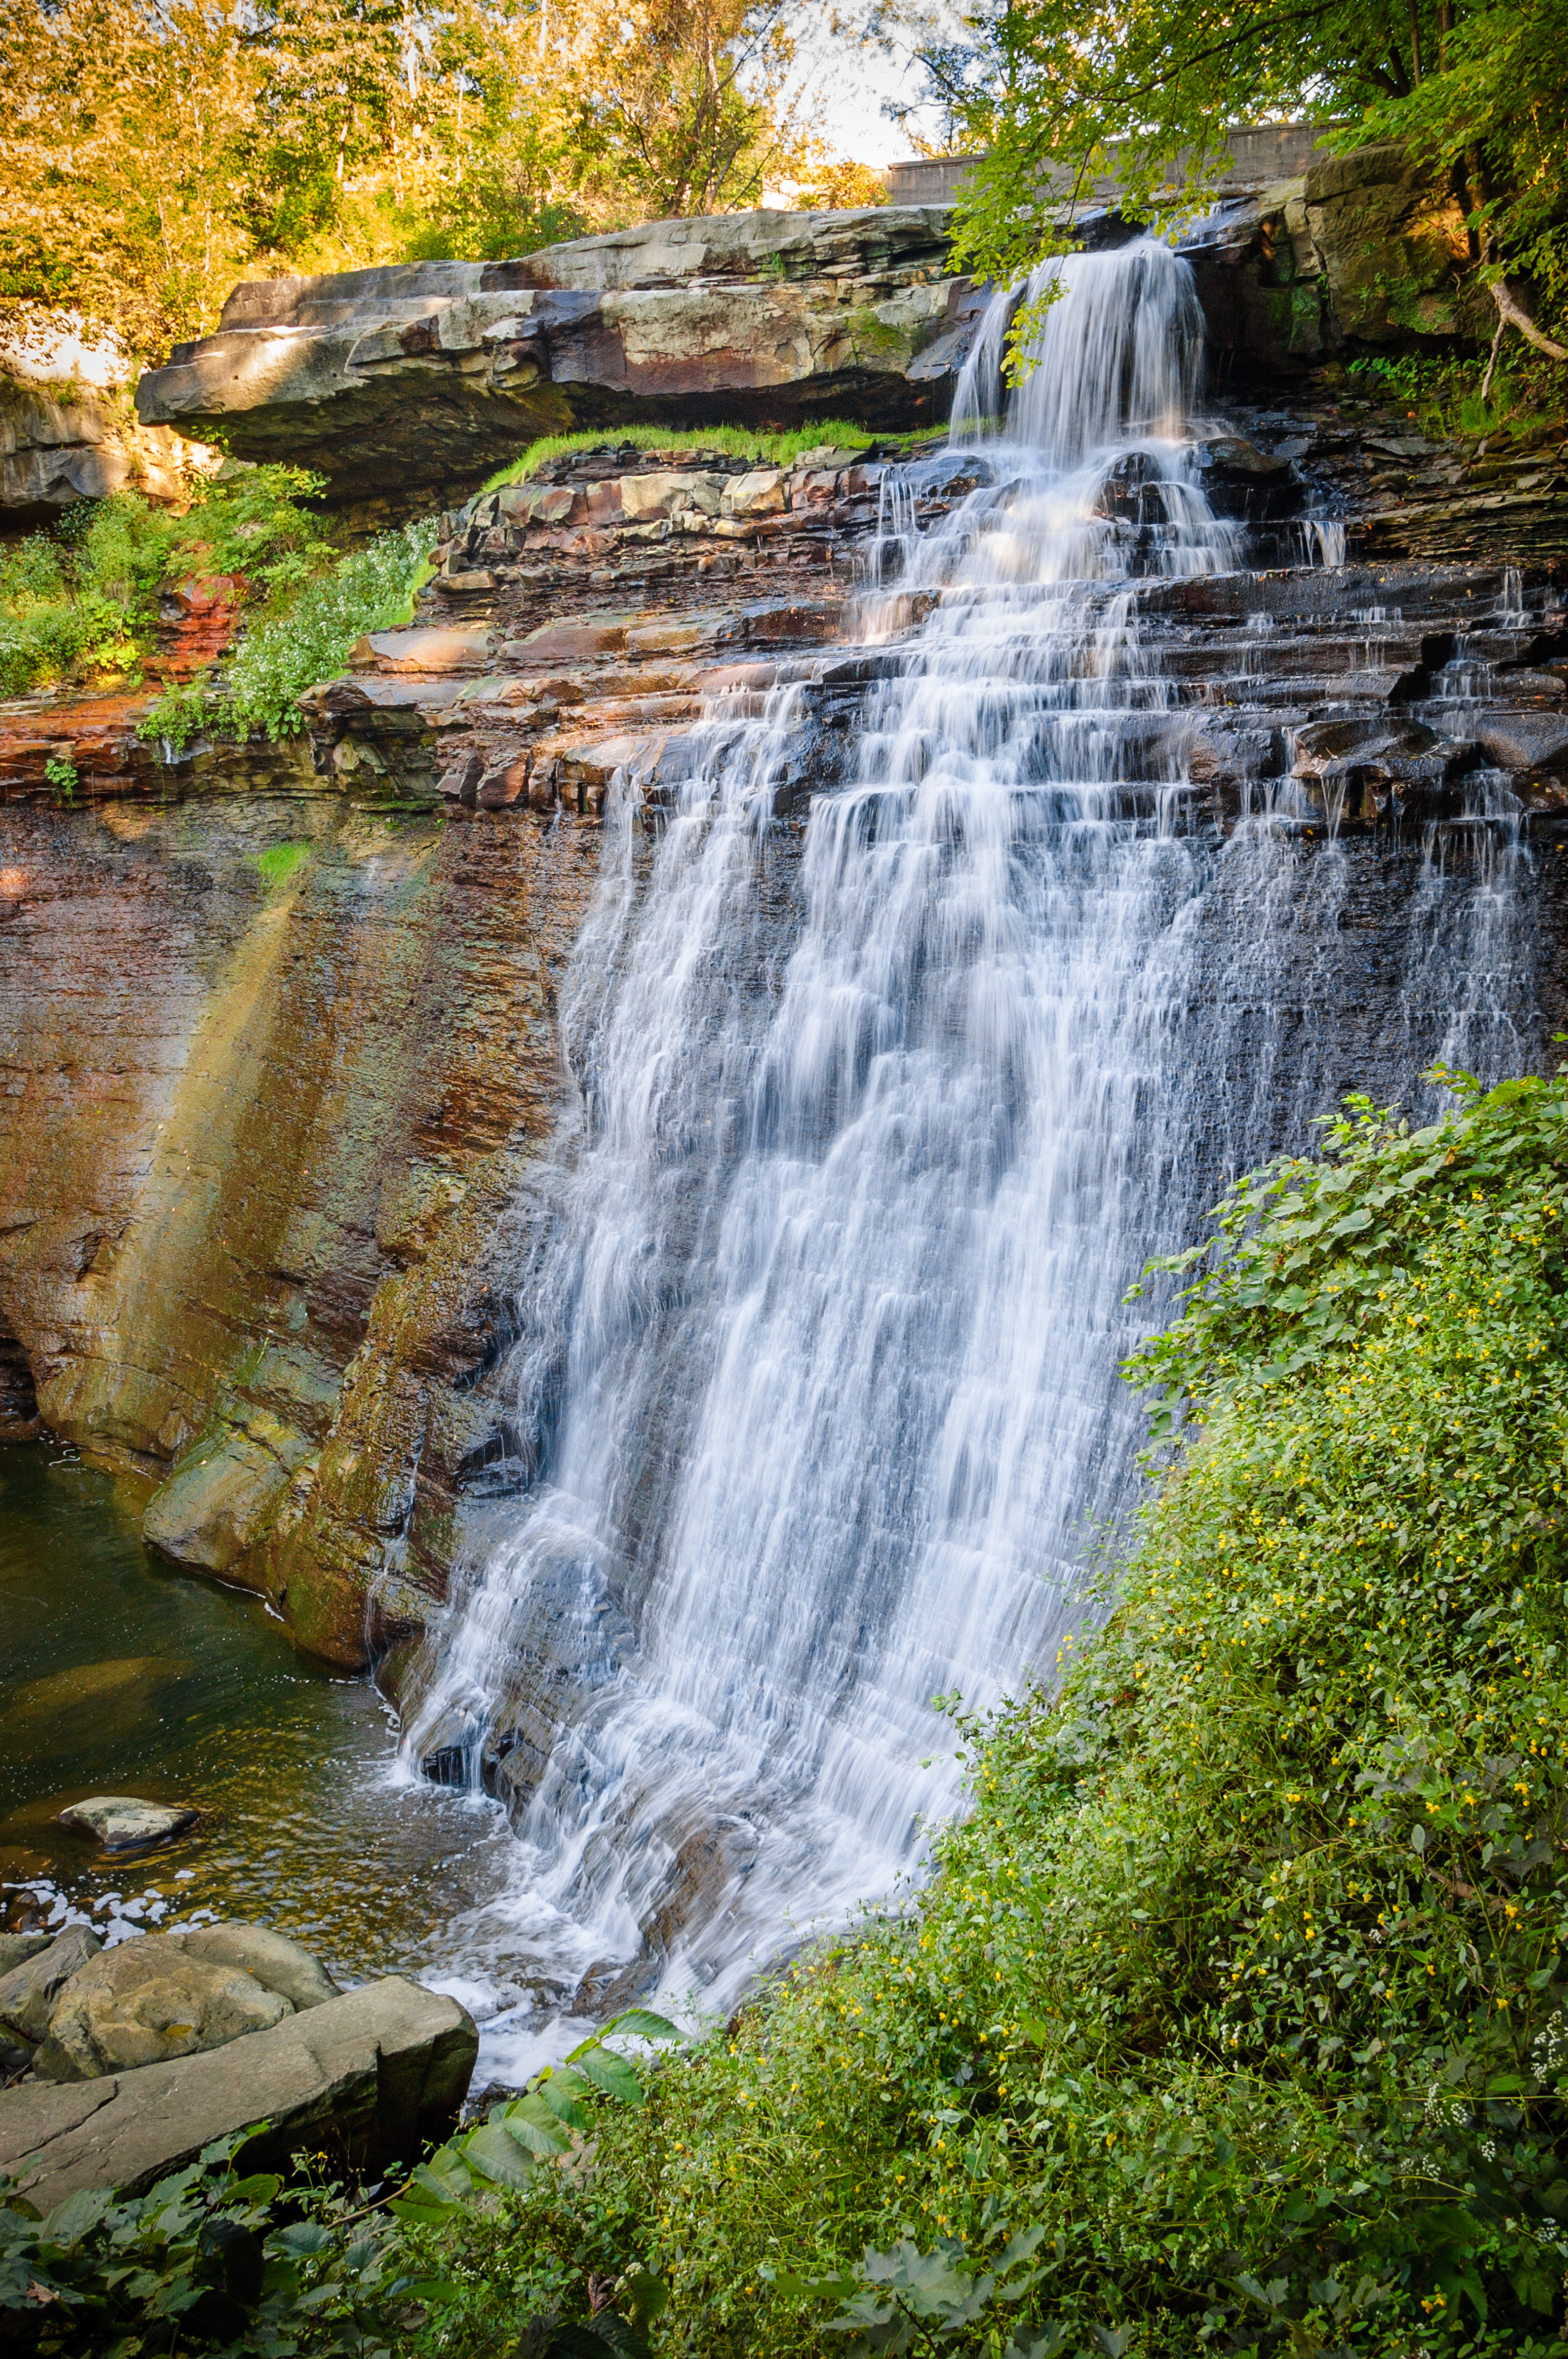 A tall waterfall rushes over a worn out rock formation, made up of flat layers of various thickness. Lush bushes and leaves surround the waterfall.